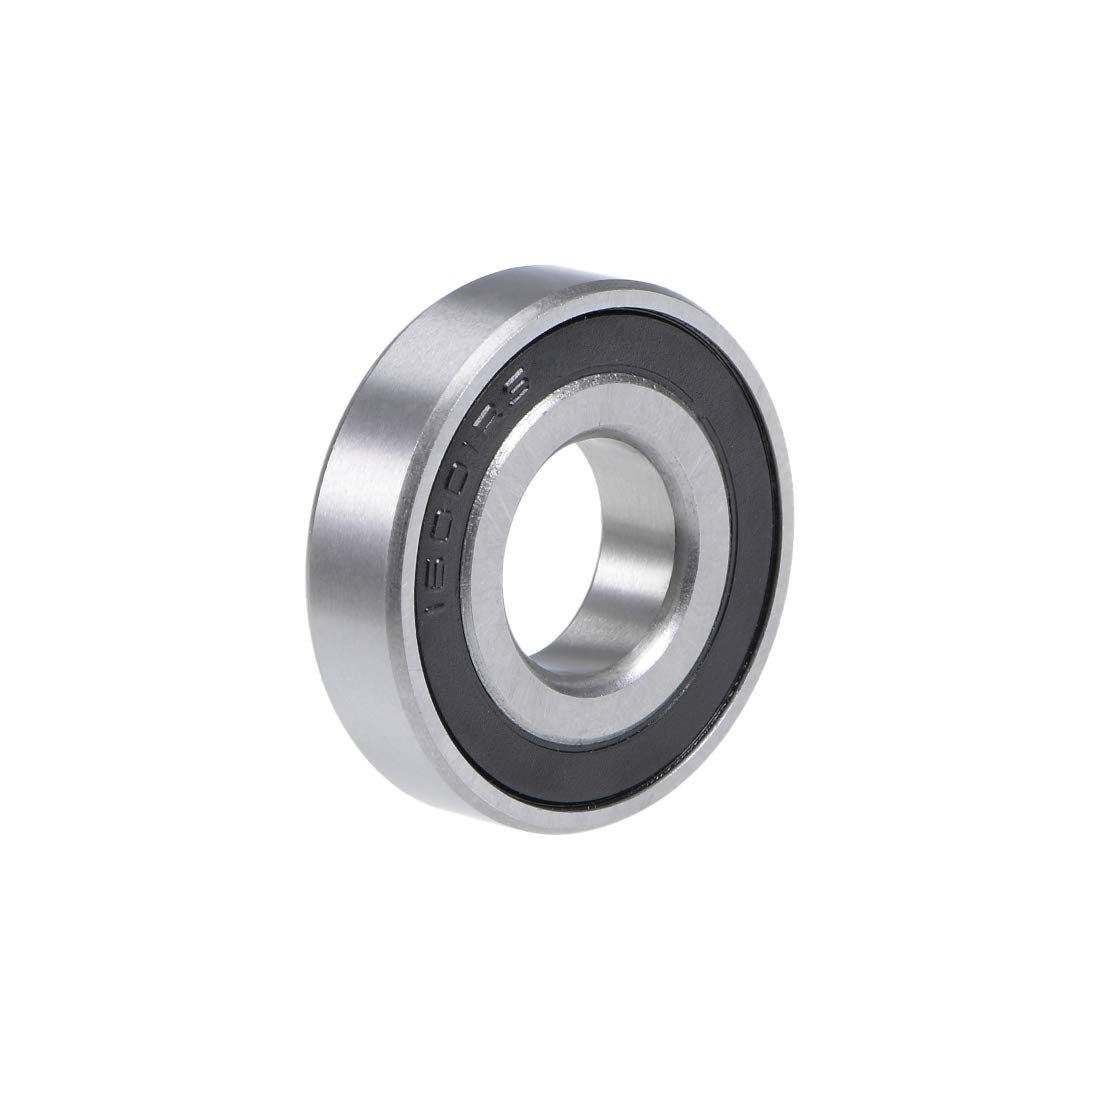 uxcell 16001-2RS Deep Groove Ball Bearing 12x28x7mm Double Shielded Chrome Steel Bearings 1-Pack